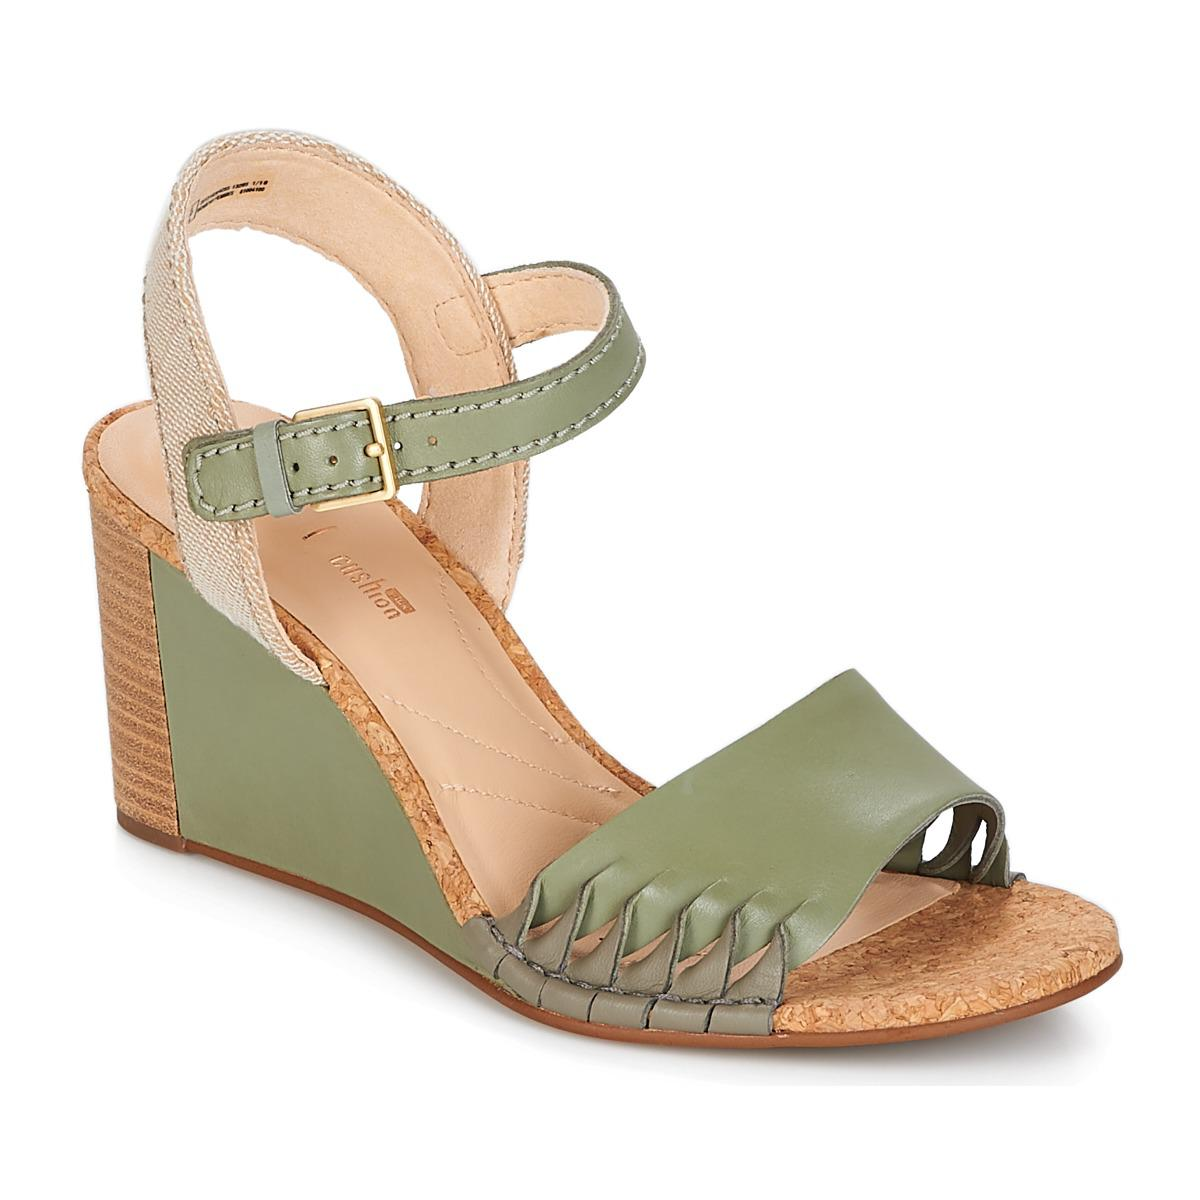 05cd072f9 Clarks Spiced Poppy Sandals in Green - Lyst